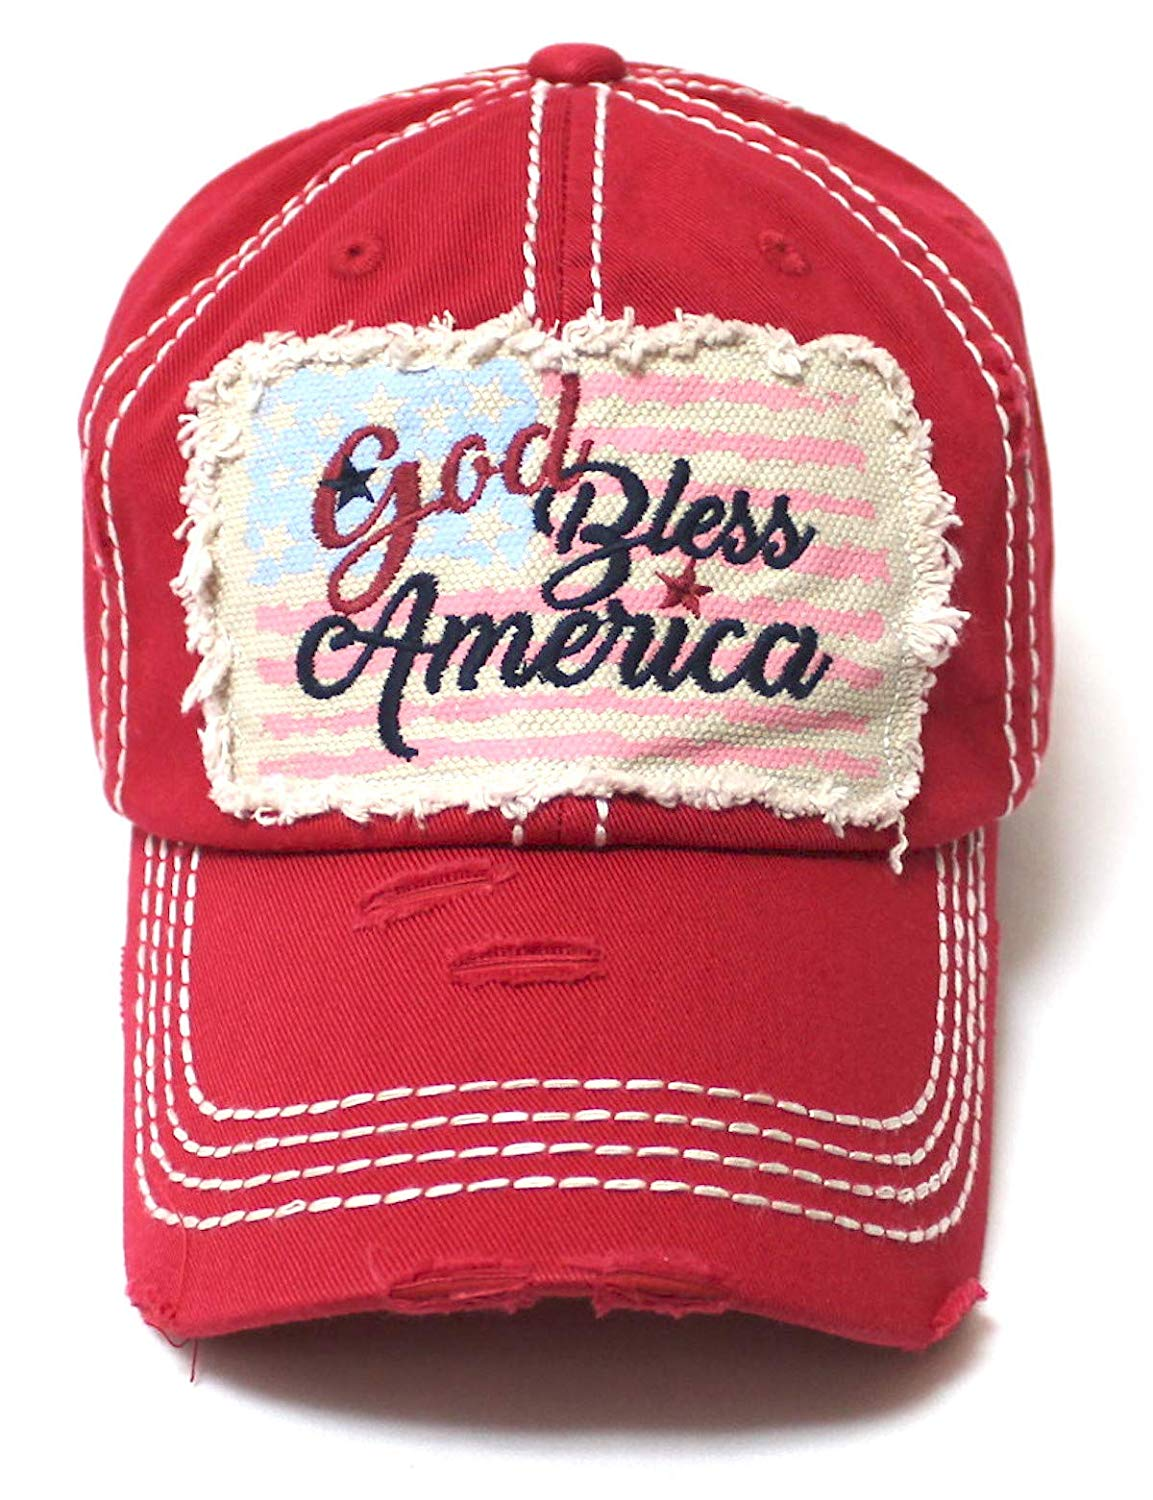 CAPS 'N VINTAGE July 4 Celebratory USA Flag Patch God Bless America Embroidery Ballcap, Ruby Red - Caps 'N Vintage